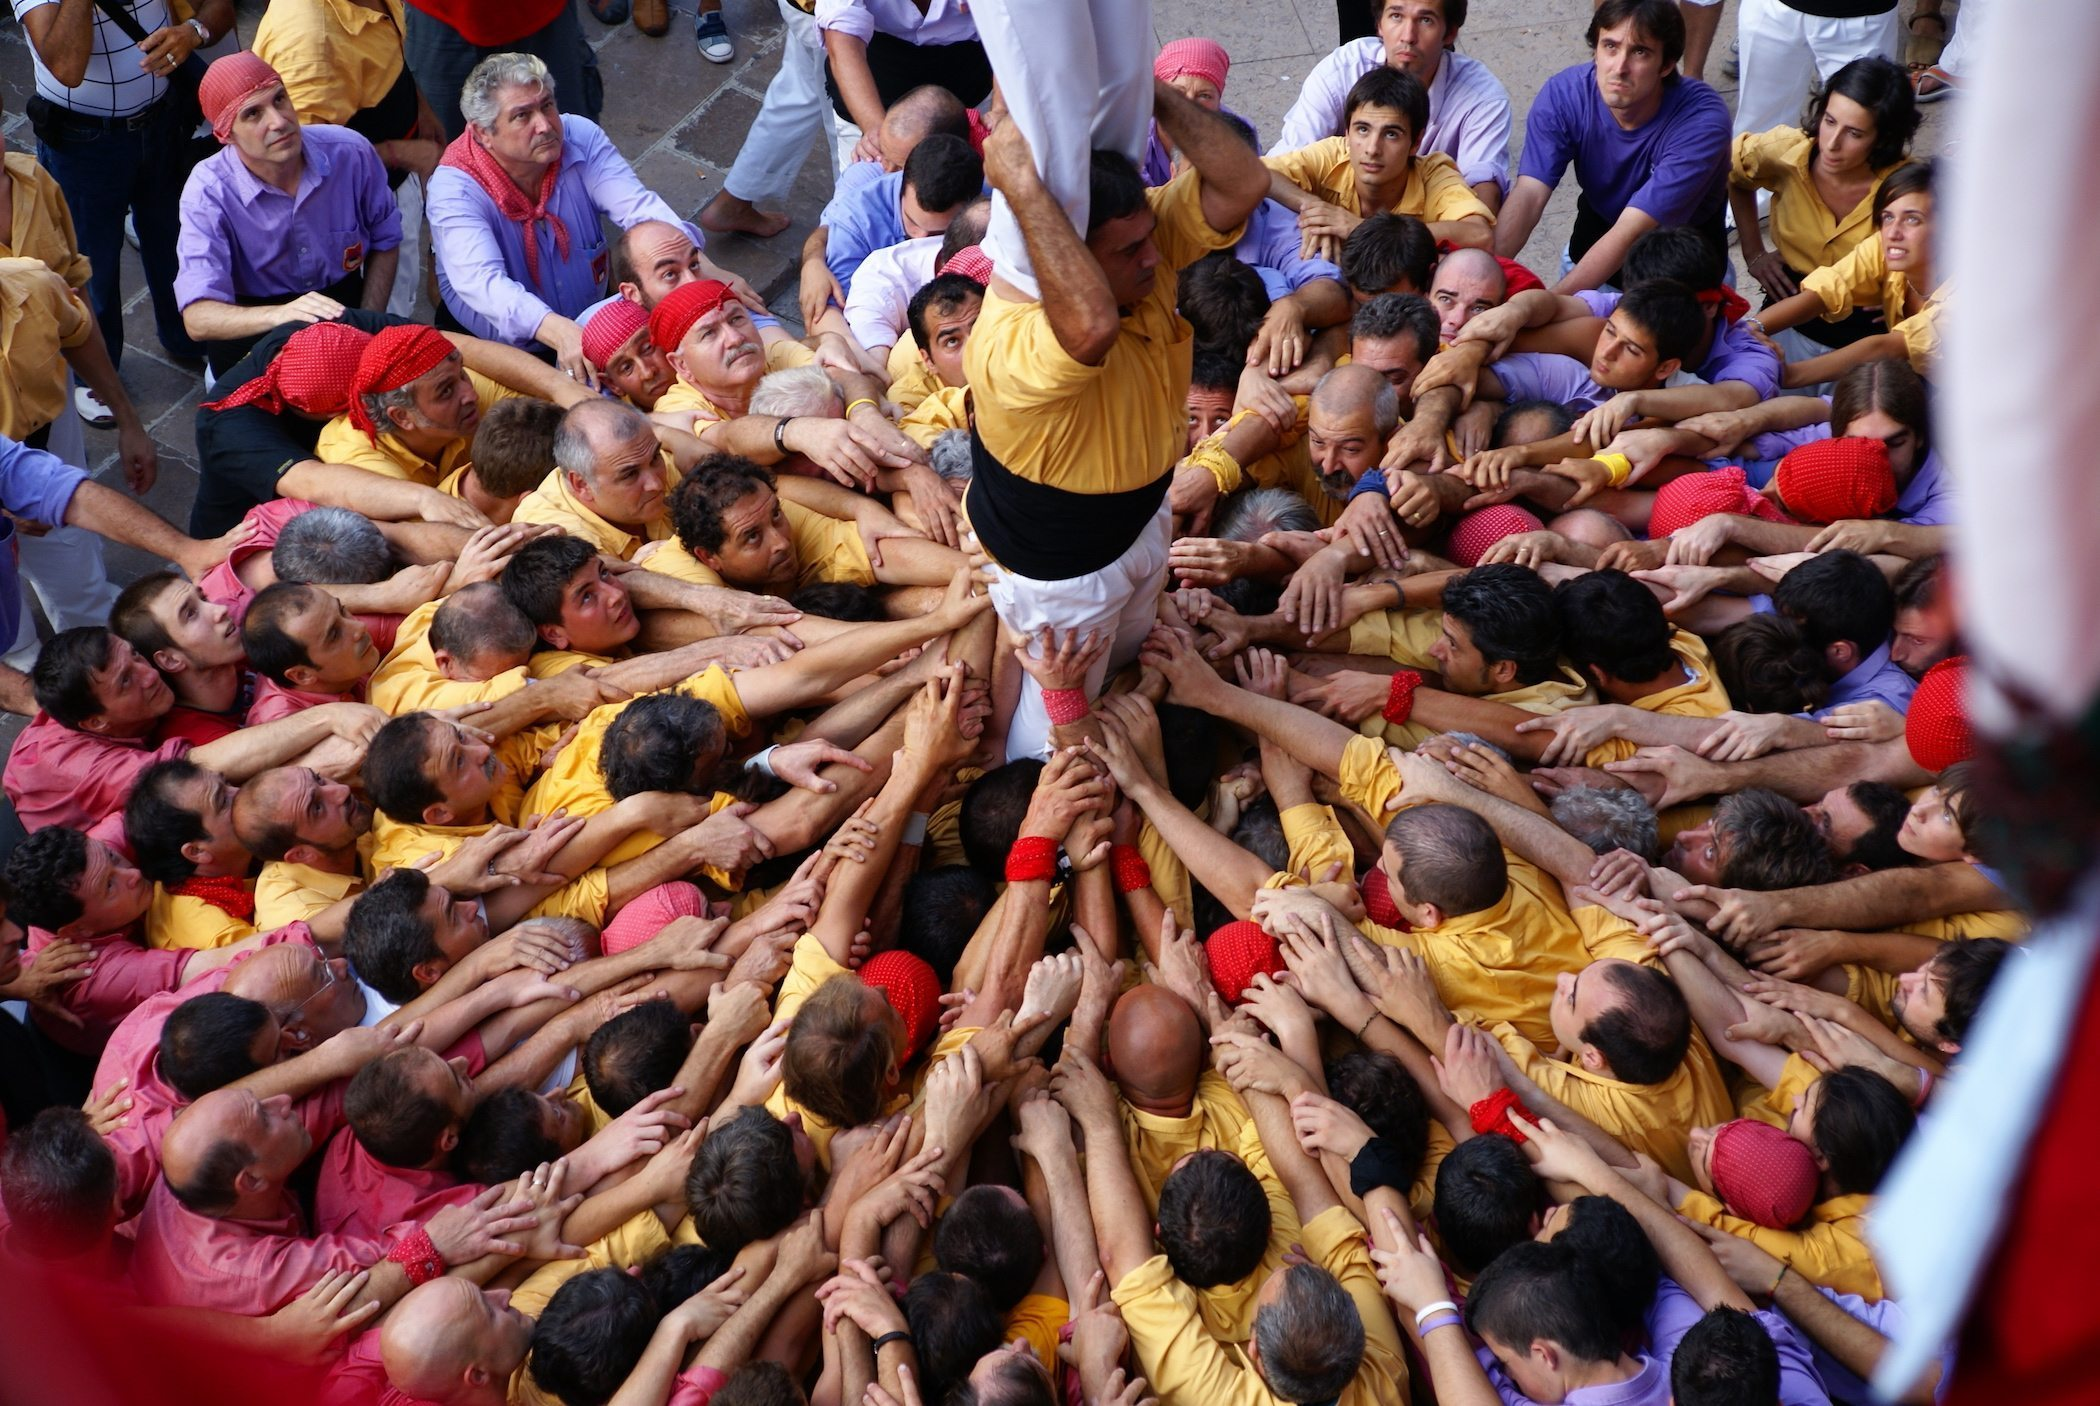 Image: People working together to create a human tower